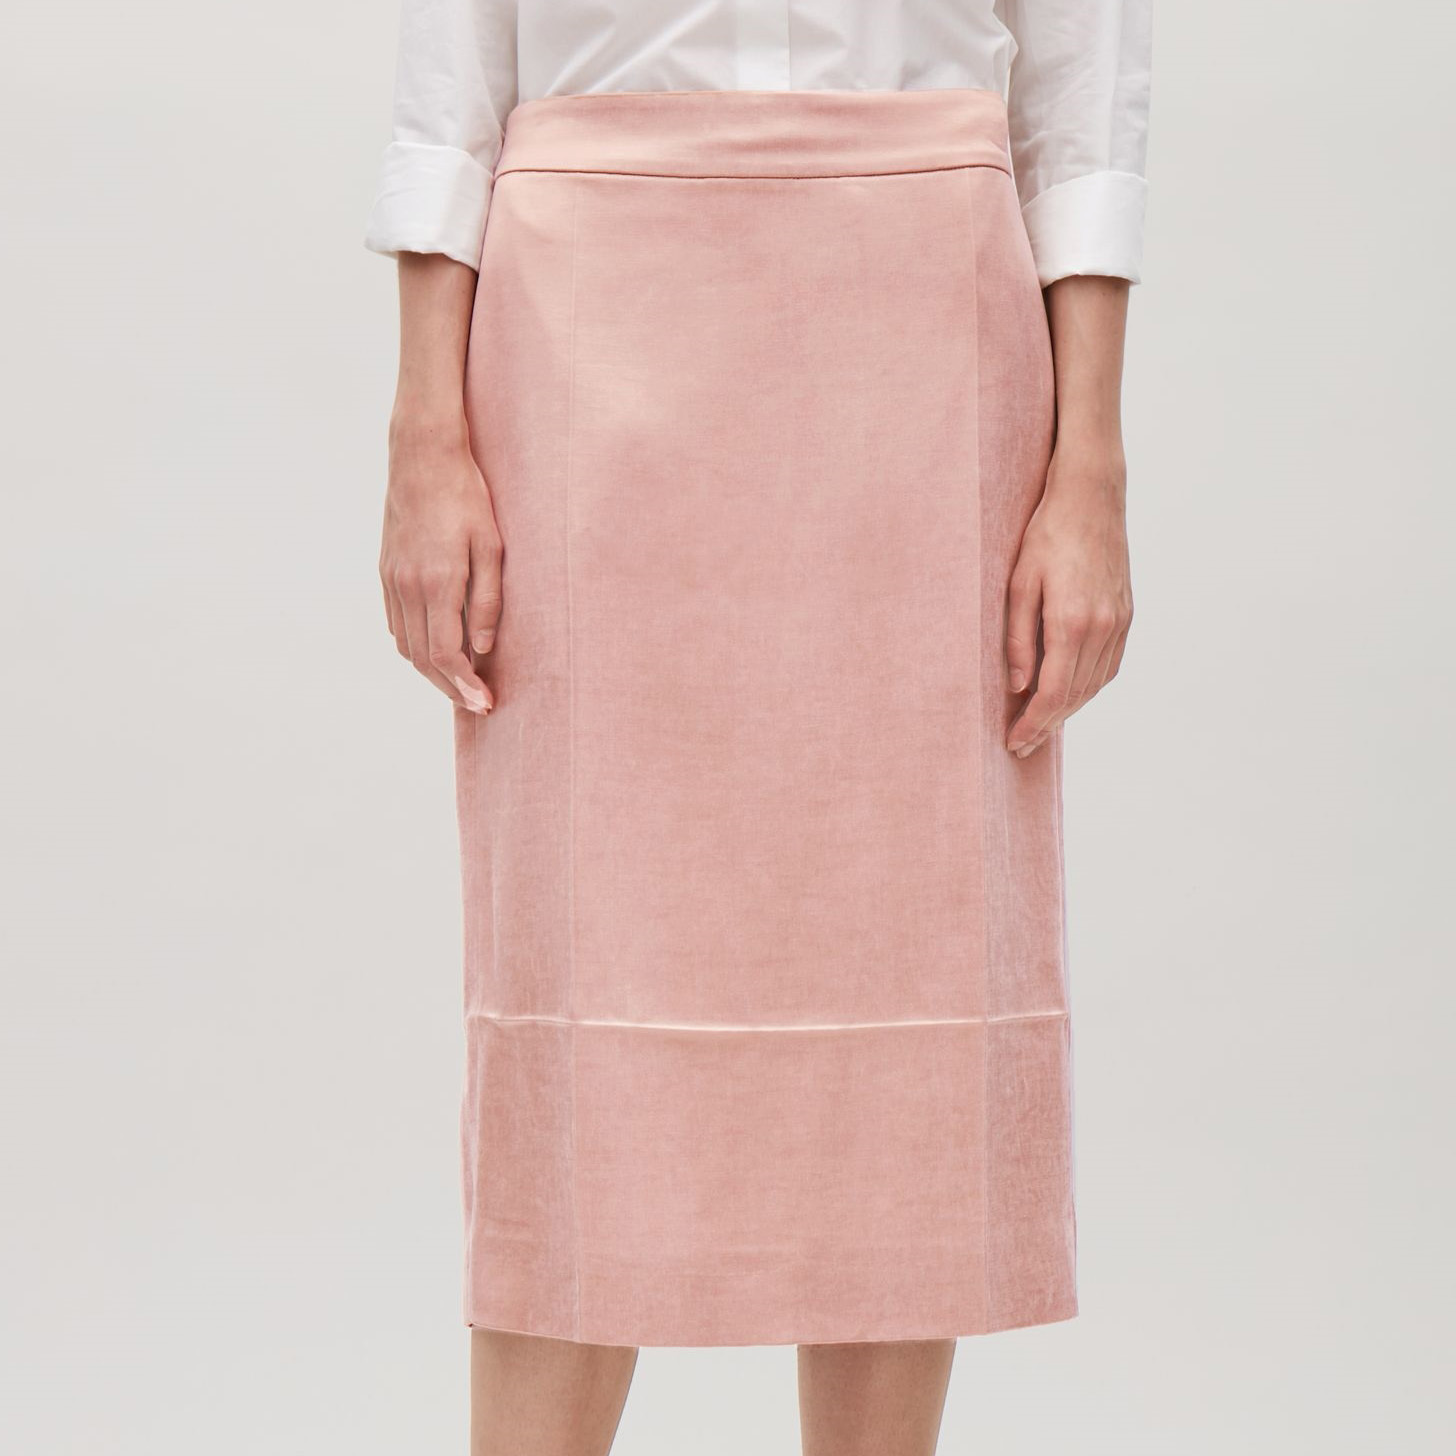 COS☆SATIN SKIRT WITH PRESS FOLDS / pink